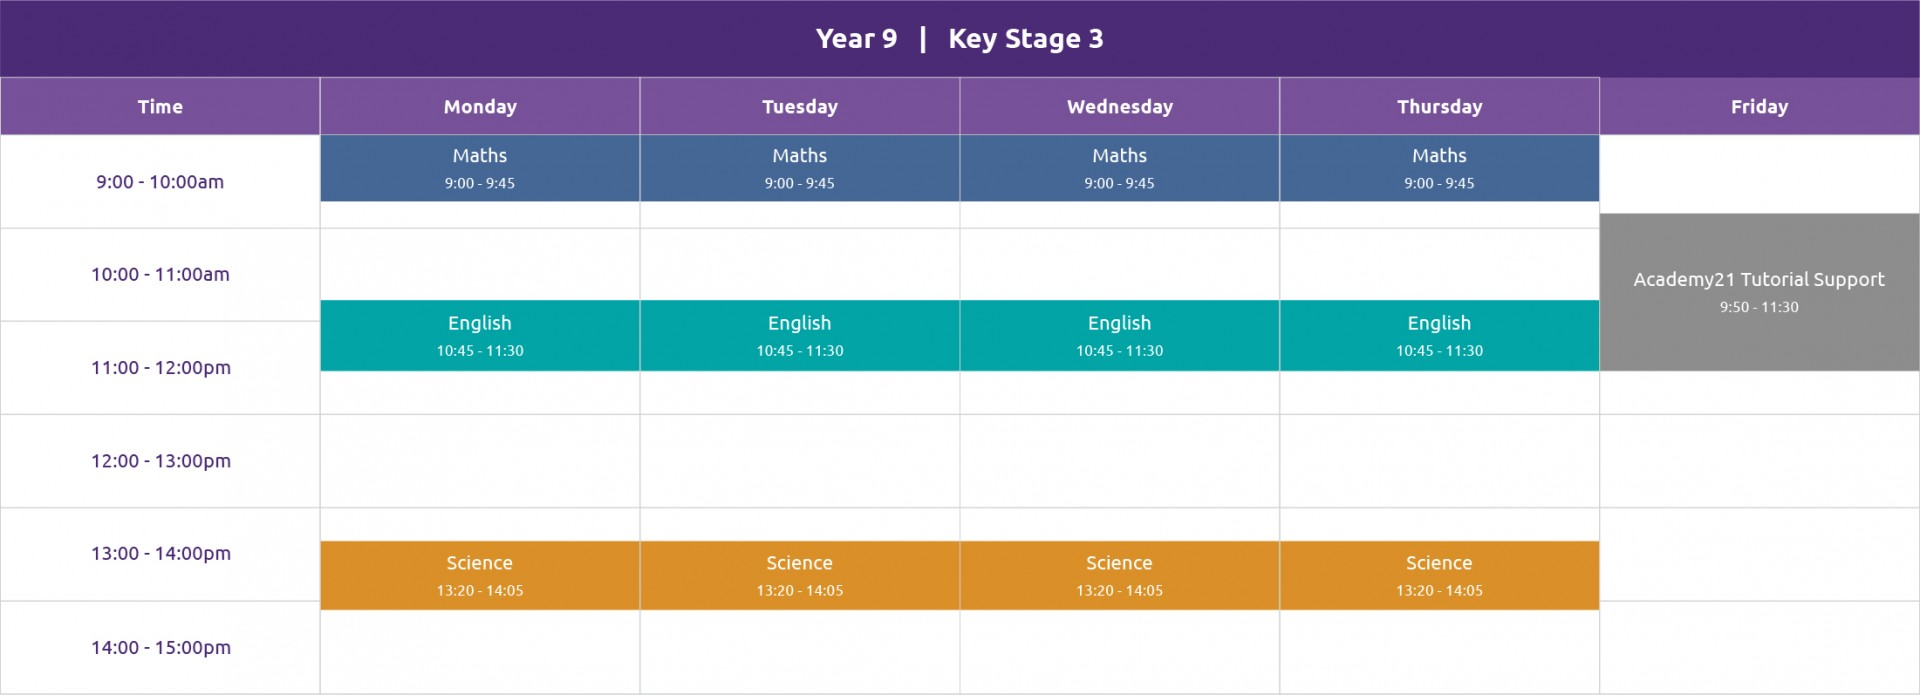 An example of a Year 9 timetable for alternative provision. English, Maths and Science appear Monday to Thursday, with tutorial support on Fridays.